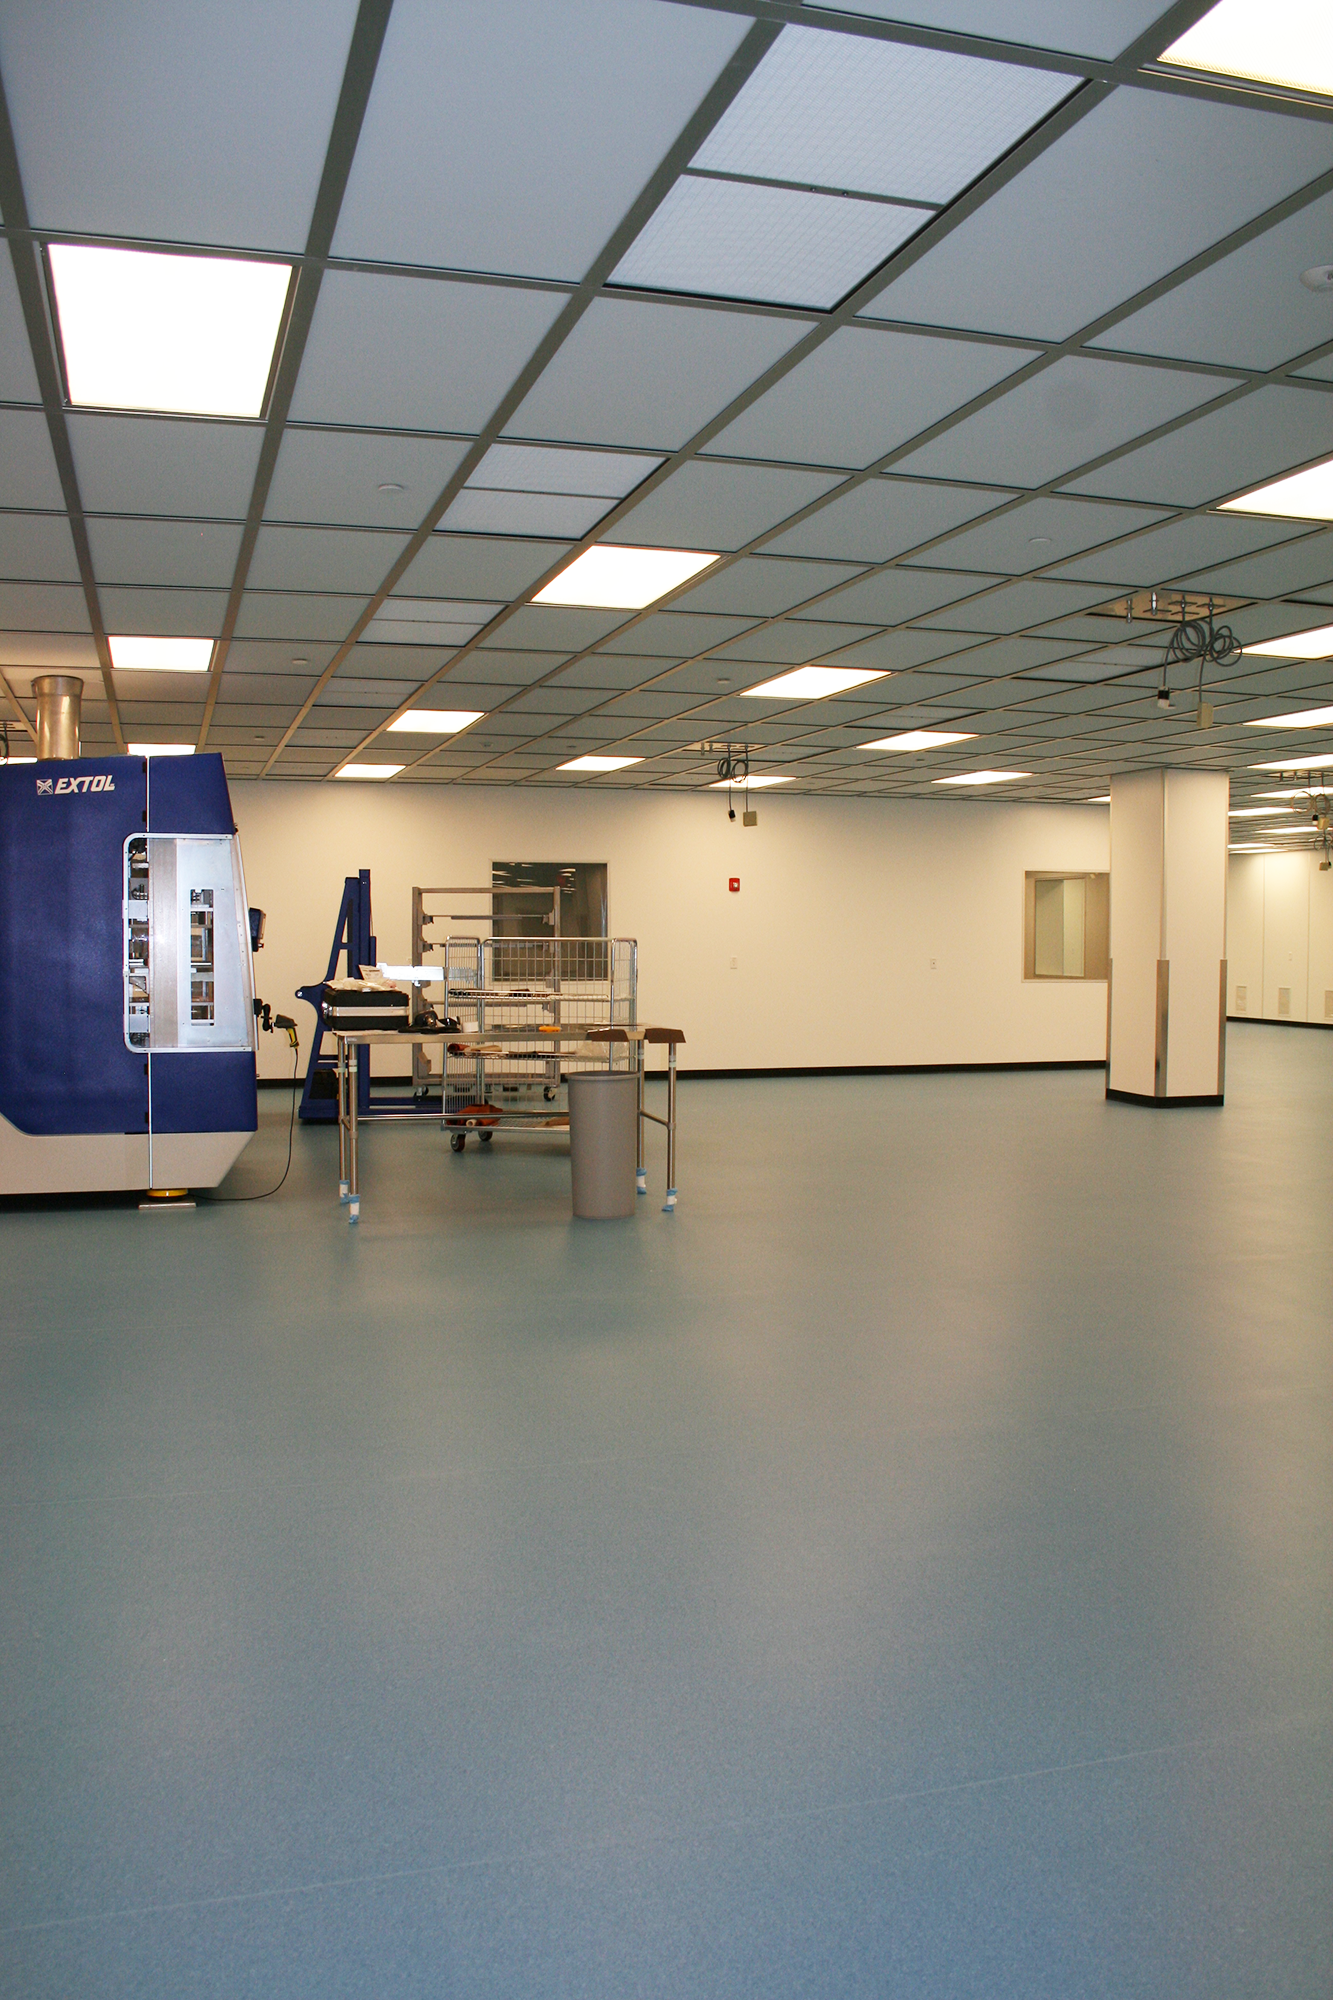 Millipore Mobius Iii Hodess Cleanroom Construction